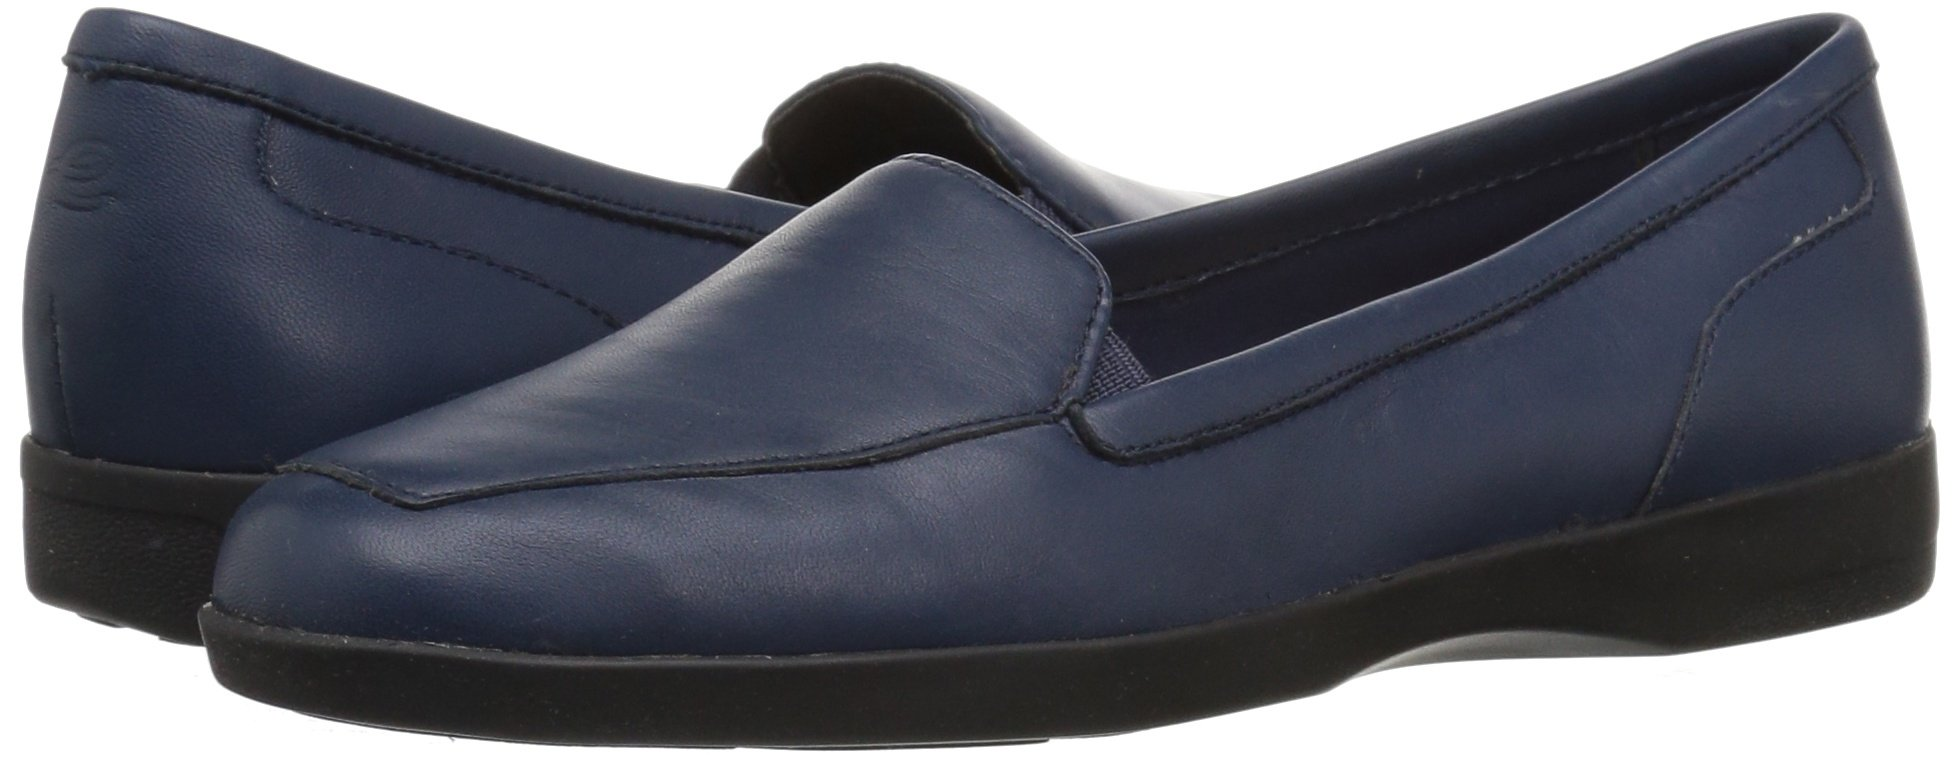 Easy Spirit Women's Devitt Oxford Flat, Blue, 5 M US by Easy Spirit (Image #6)